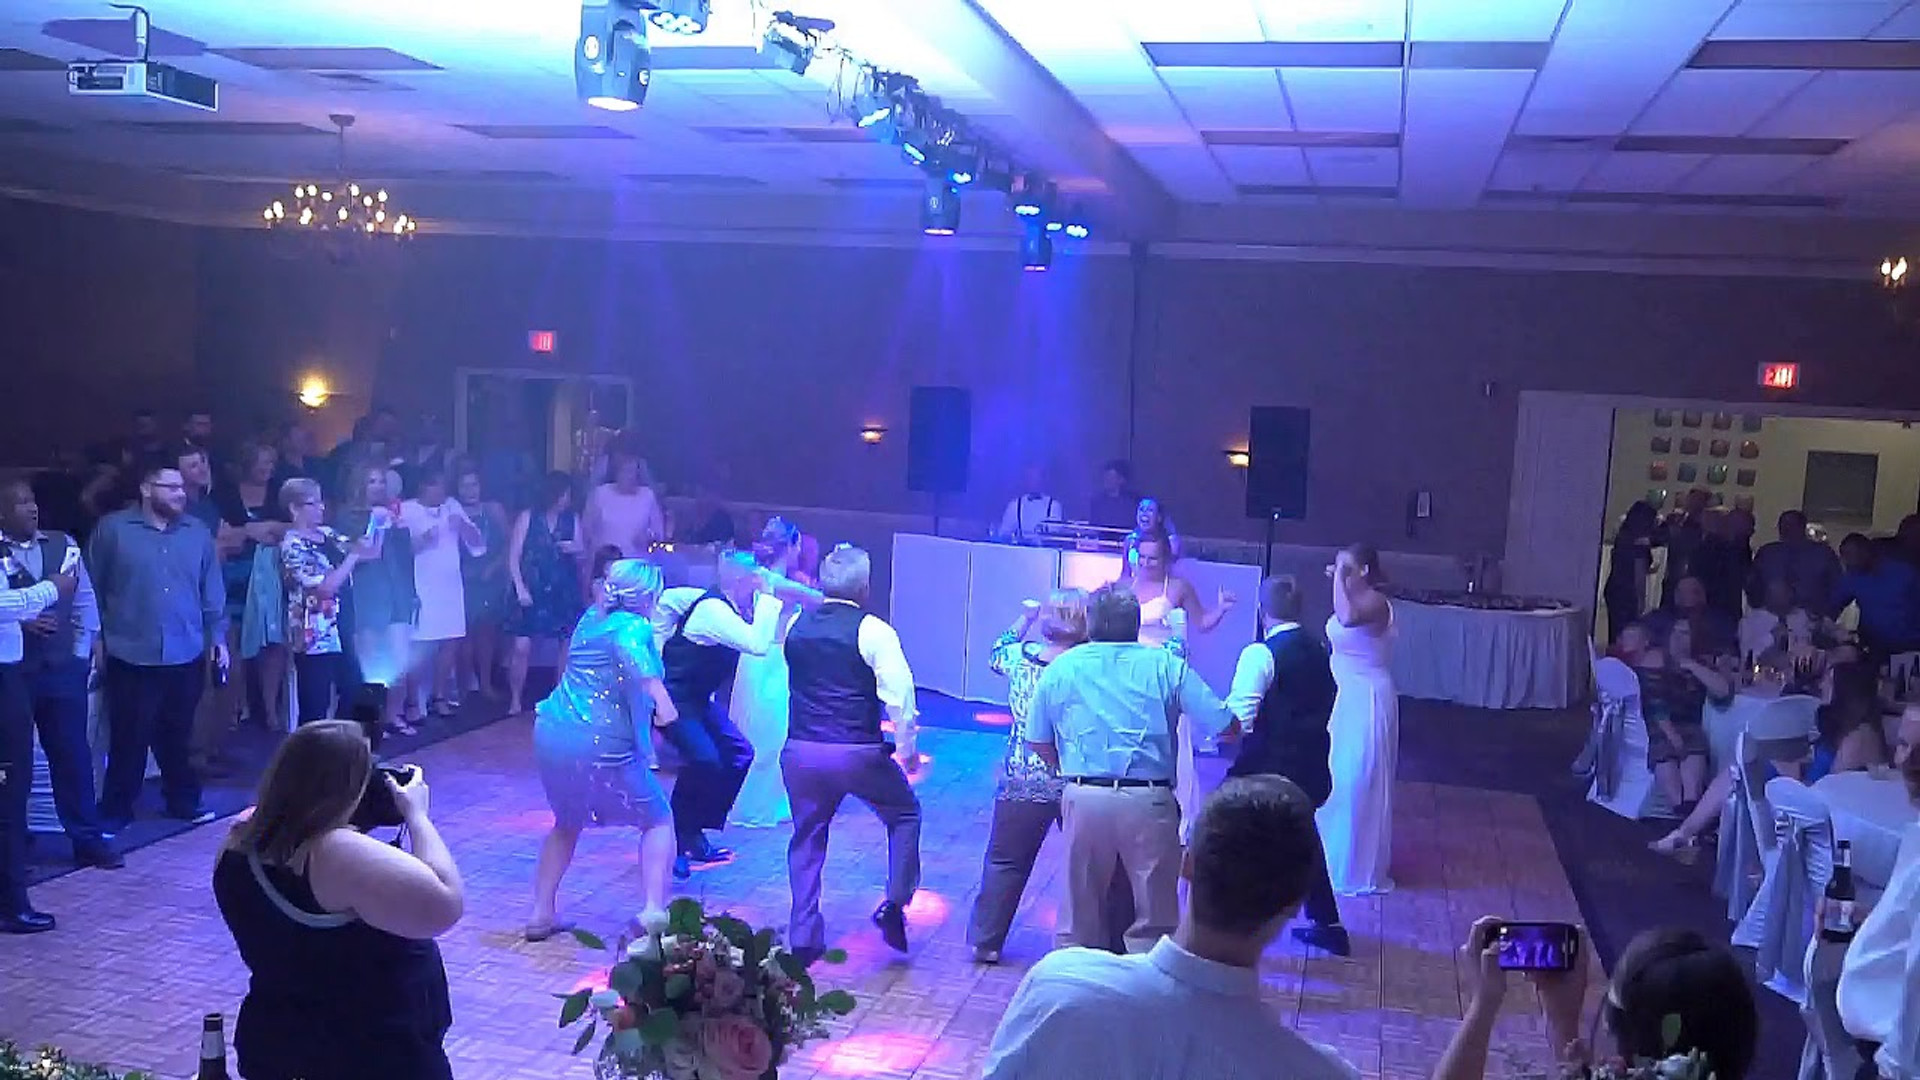 EPIC Surprise Dance at Wedding Reception 9.15.18 at Double Tree Hotel